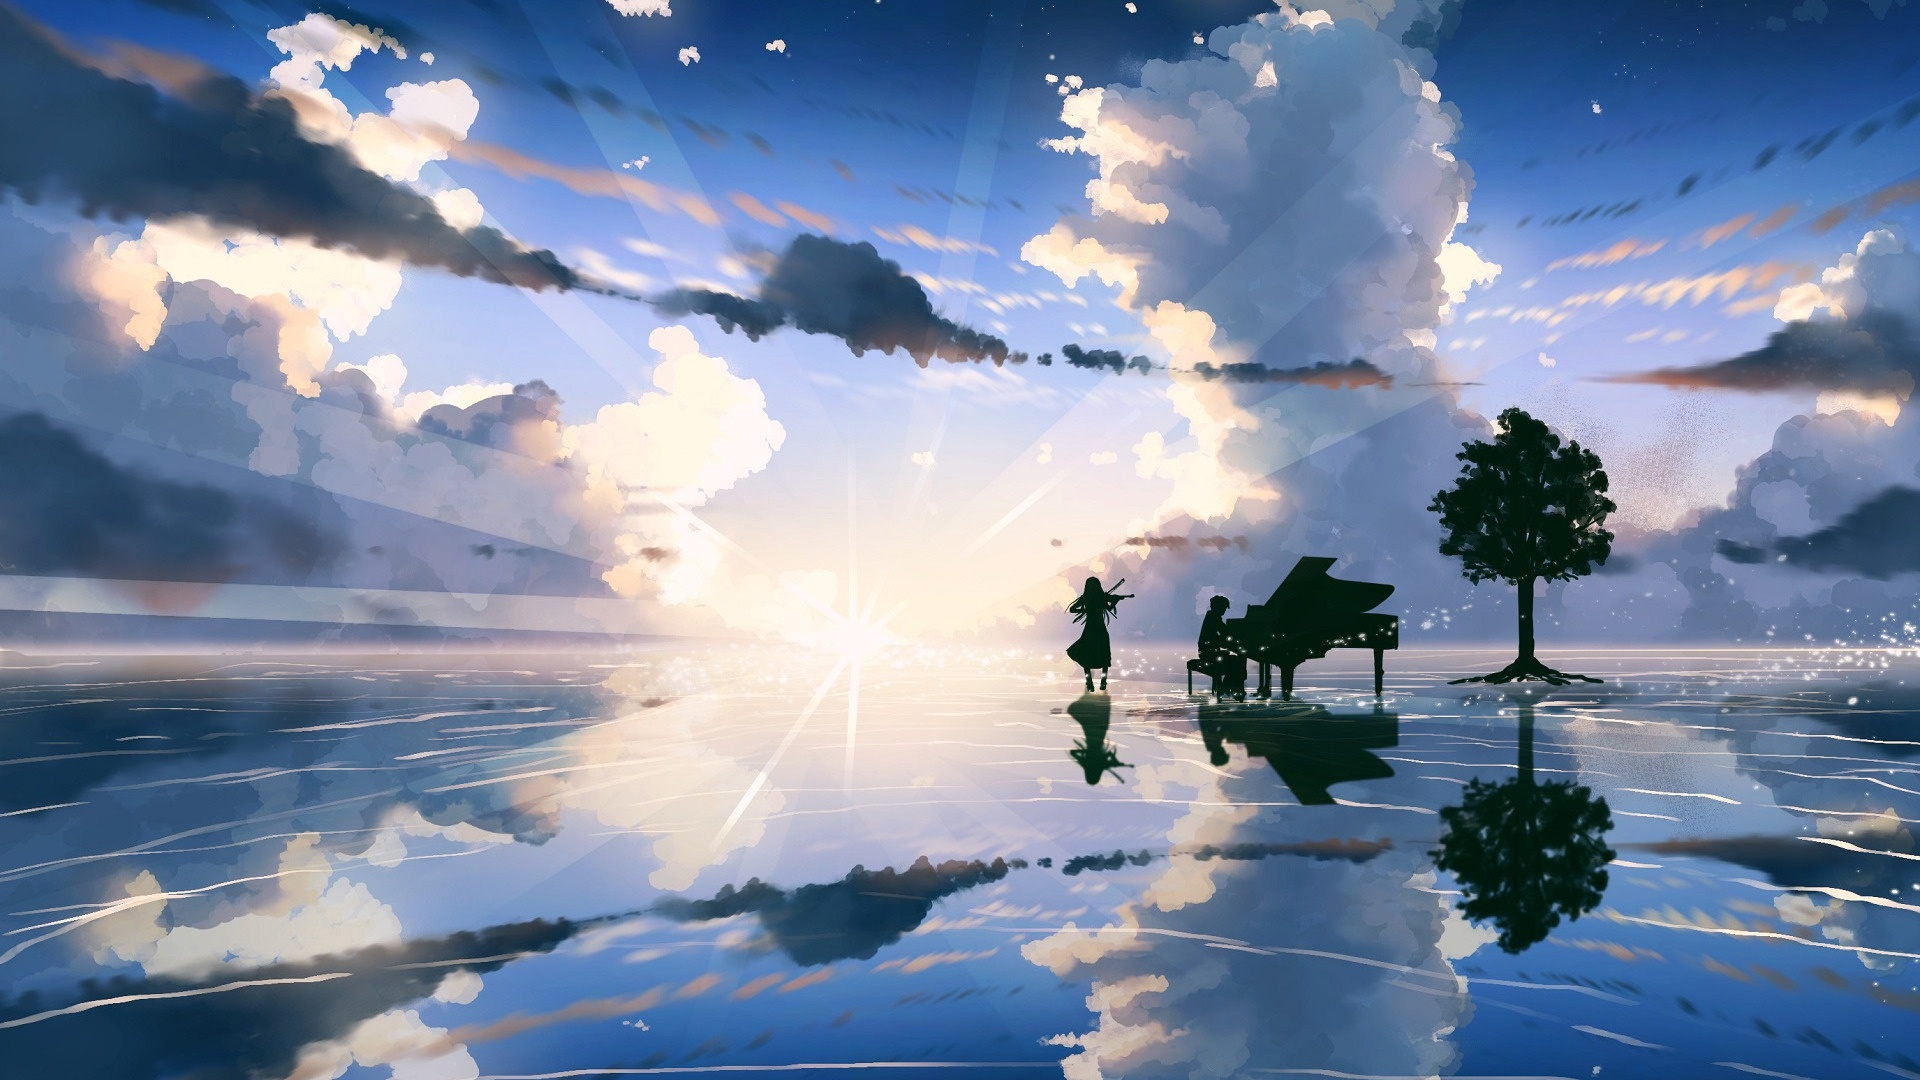 Anime Landscape With Clouds free pic